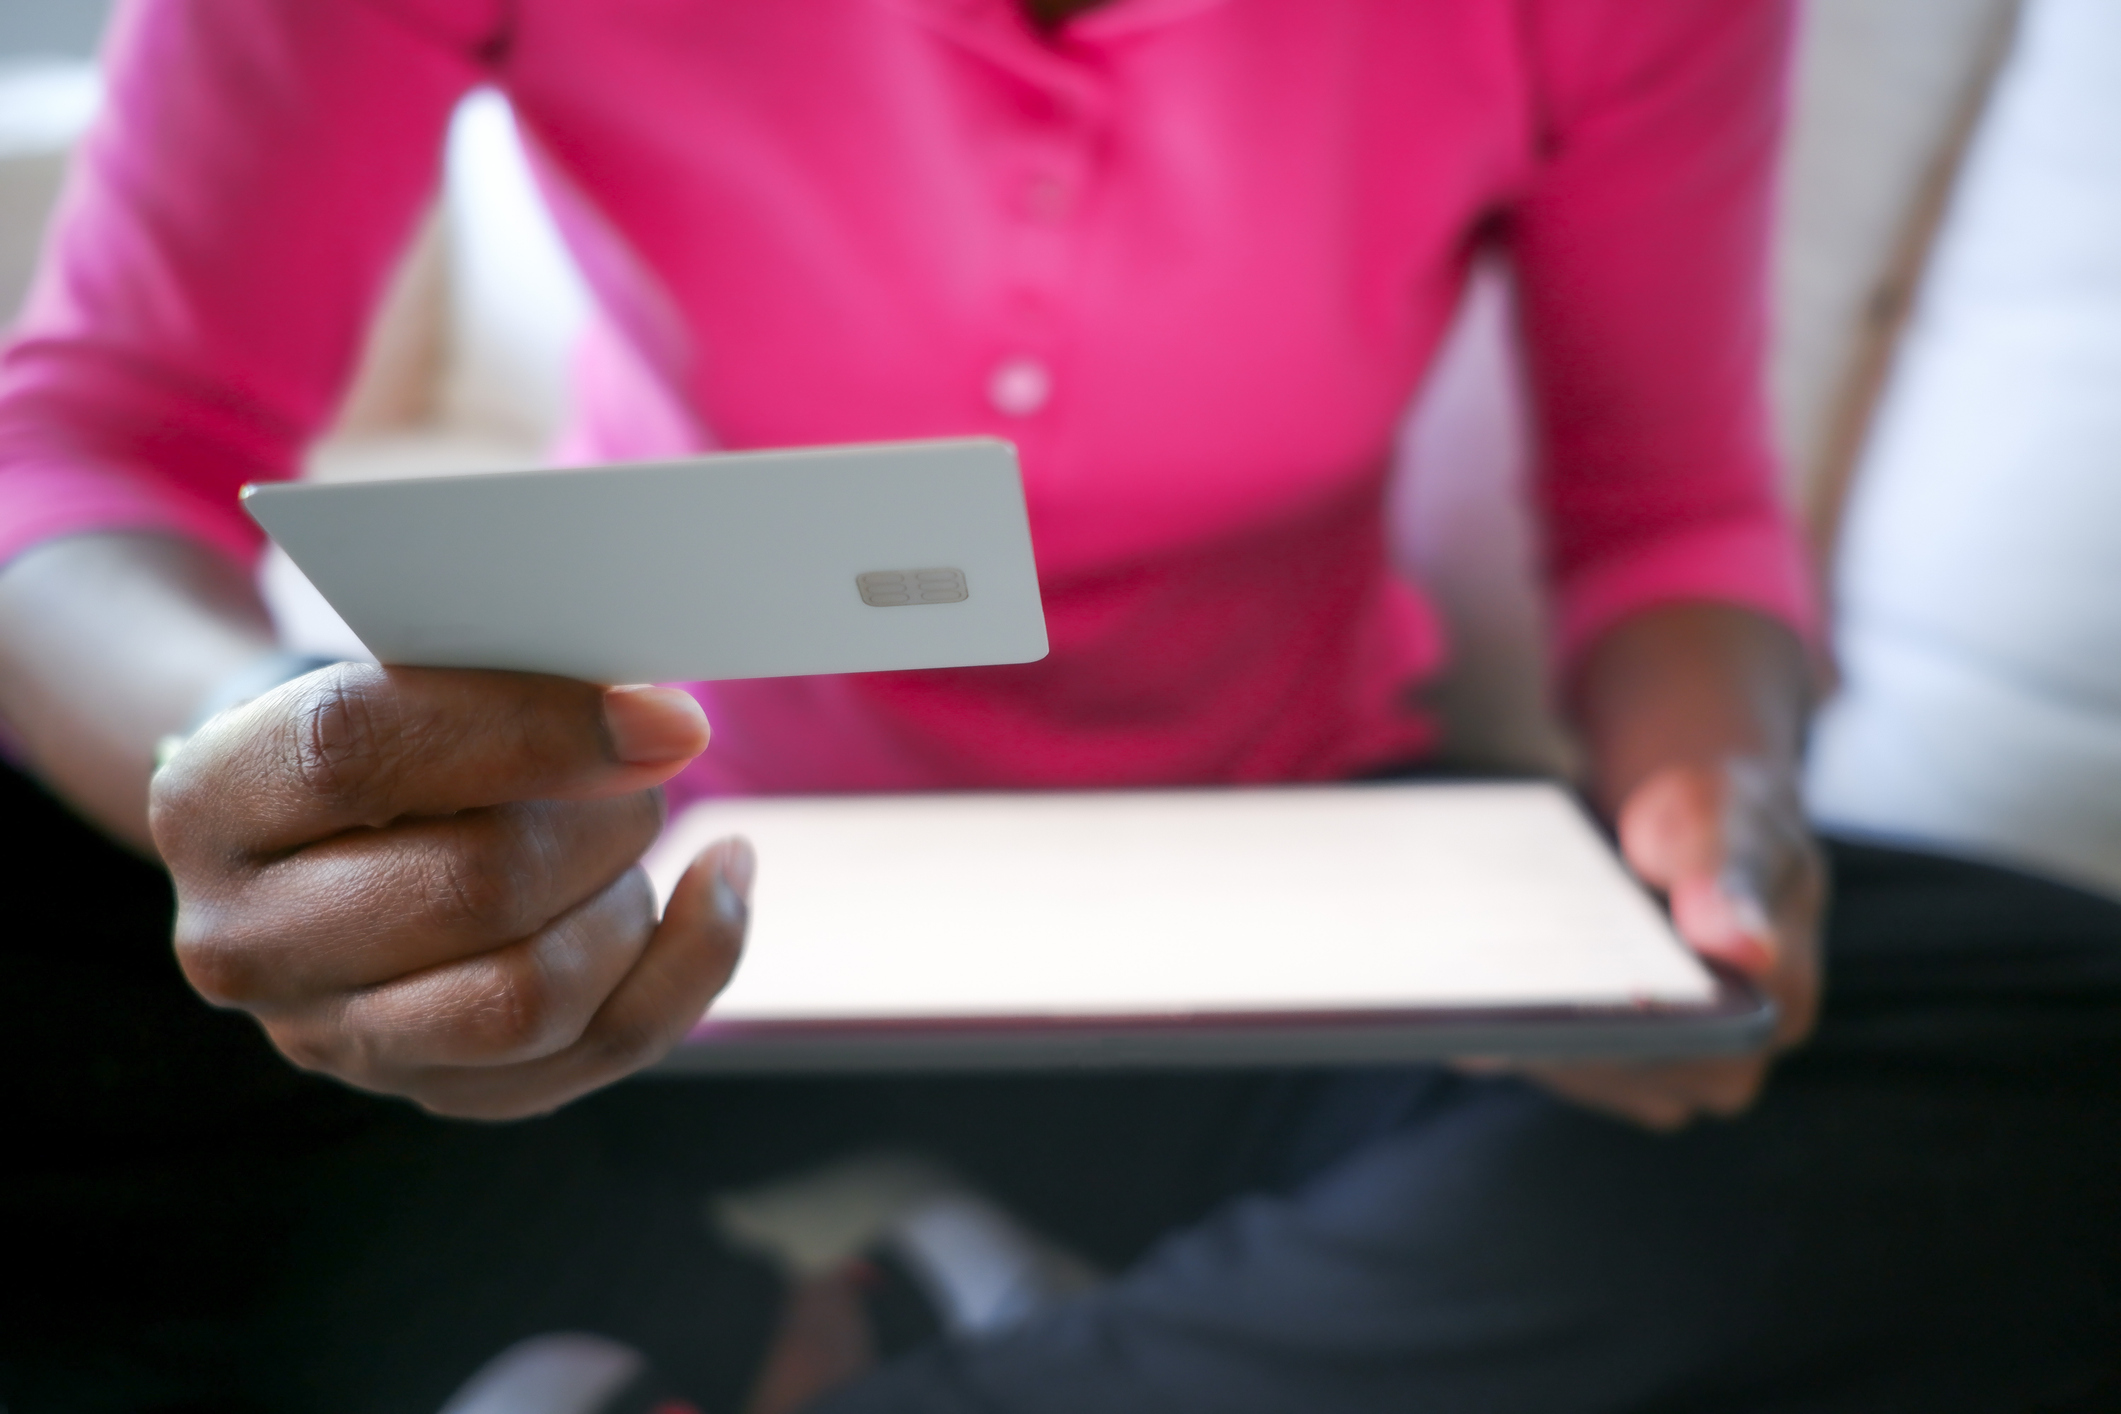 secured-credit-card-gettyimages-1321046833